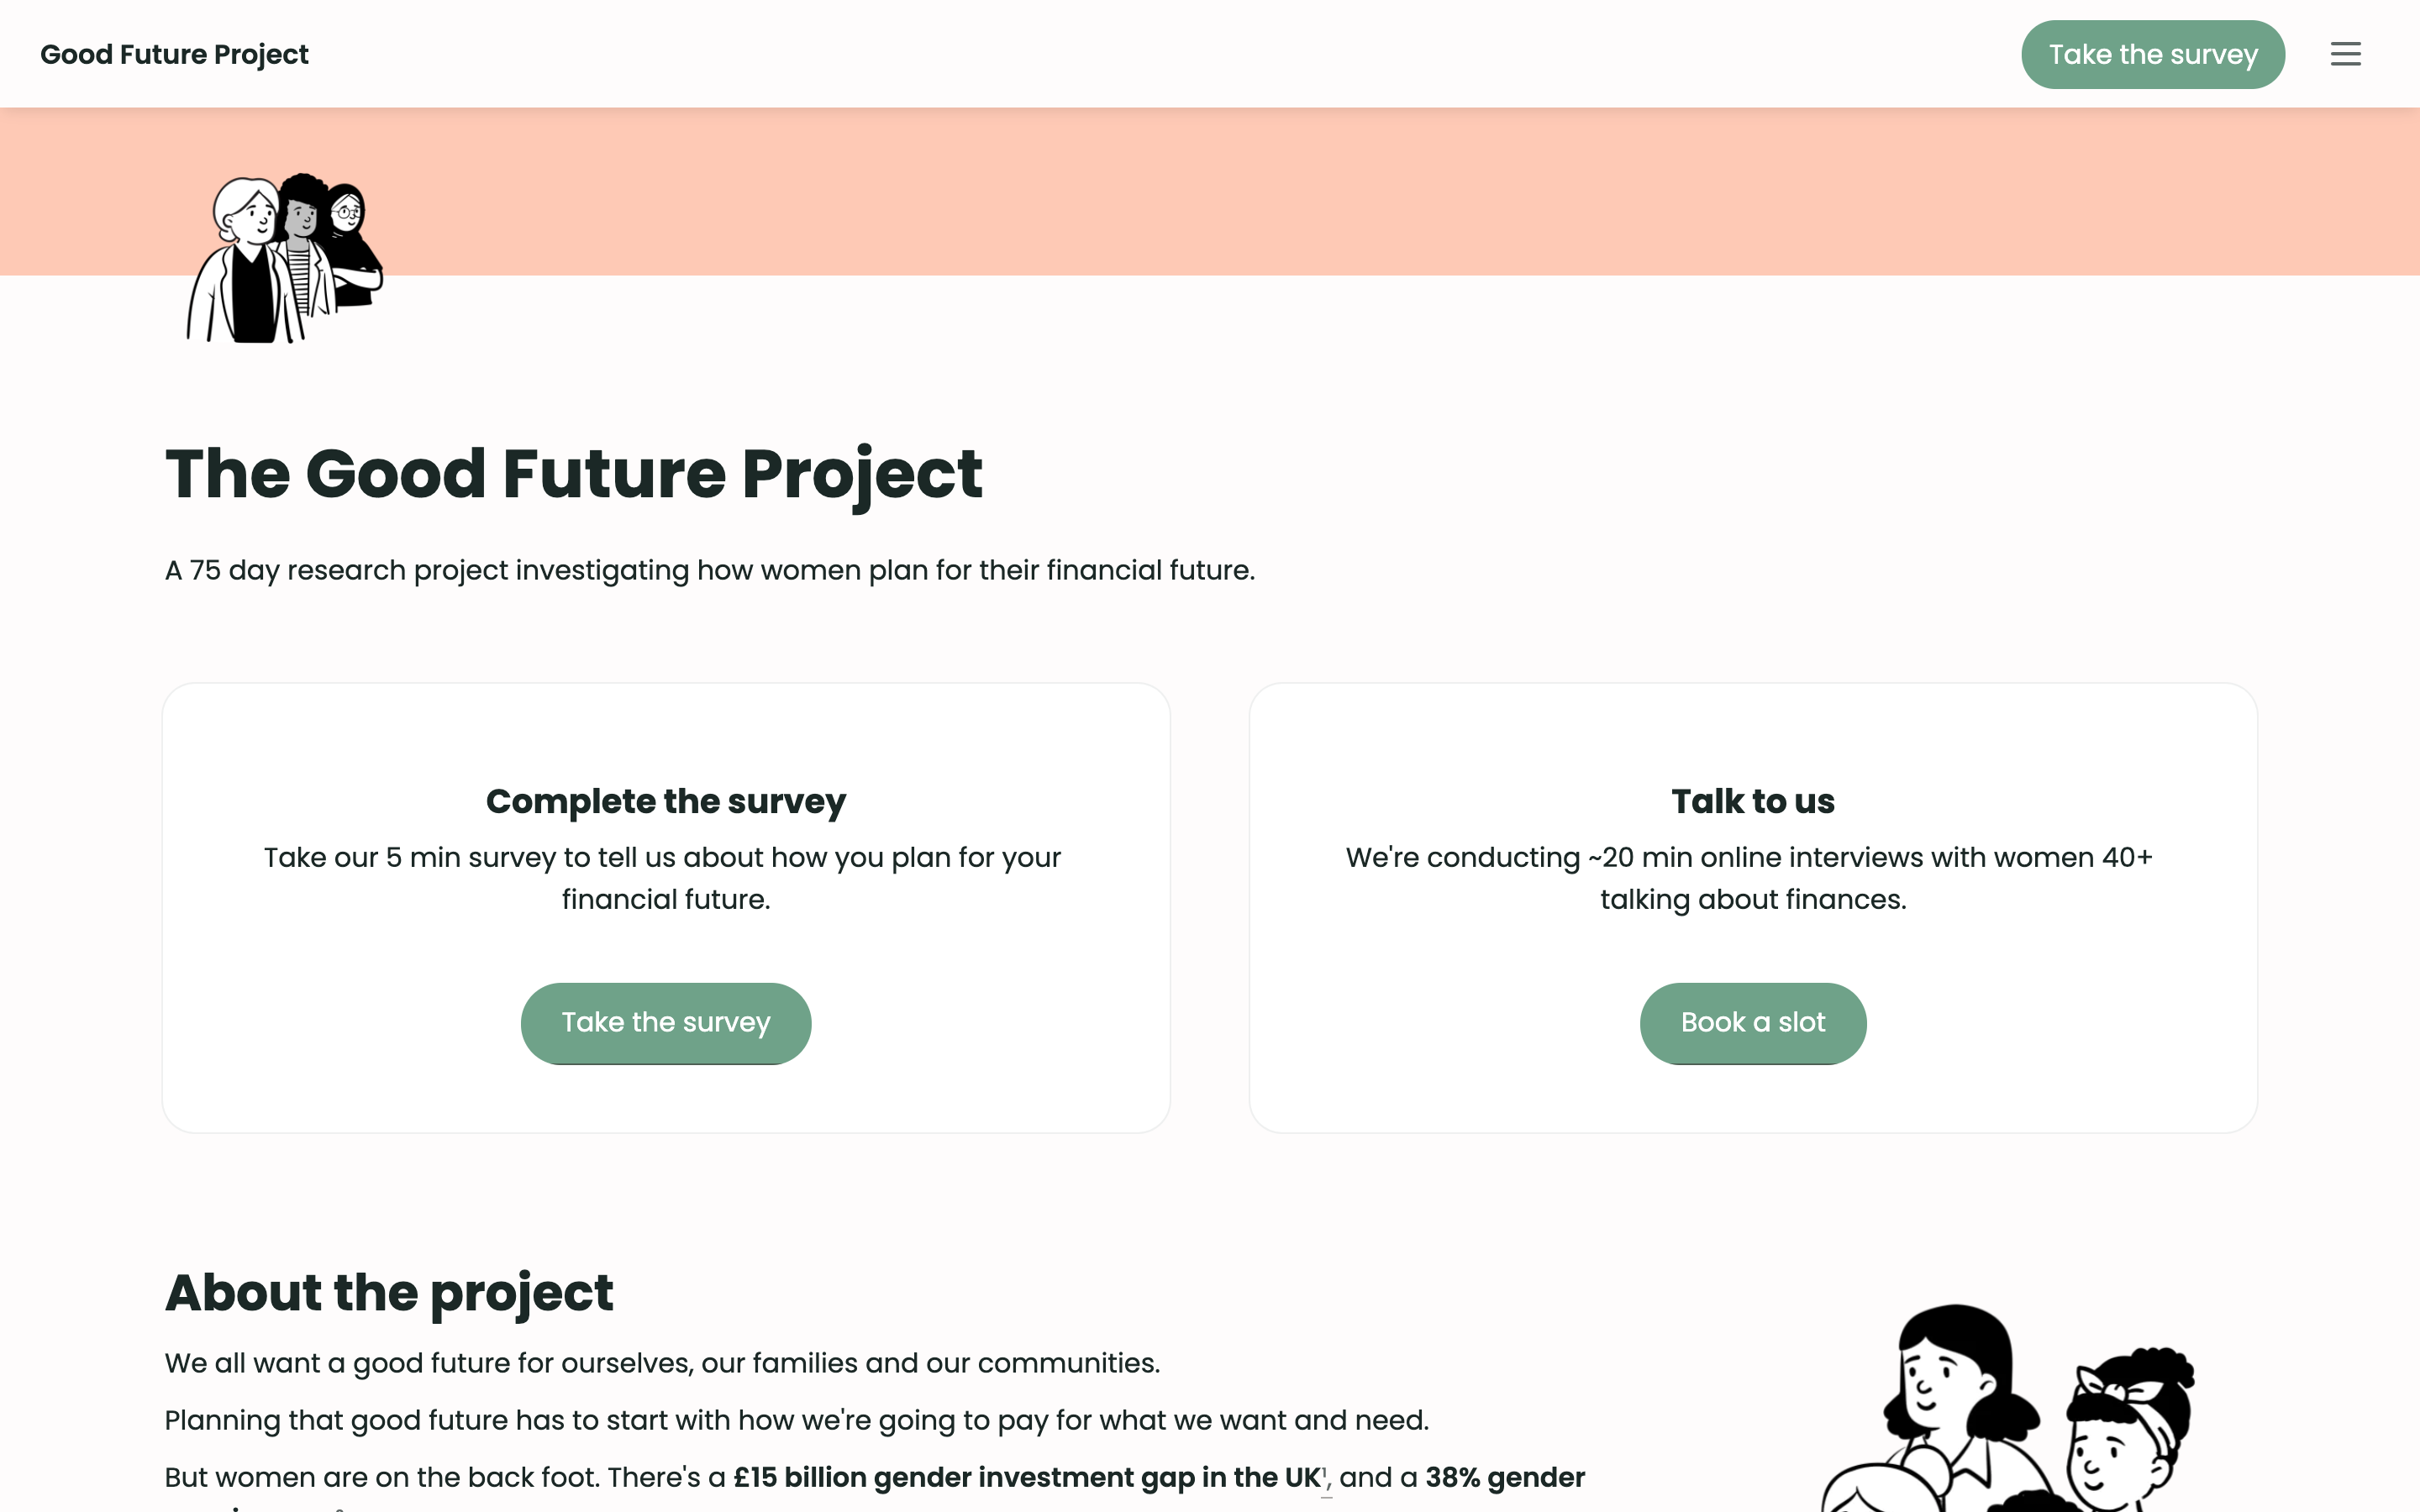 The Good Future Project